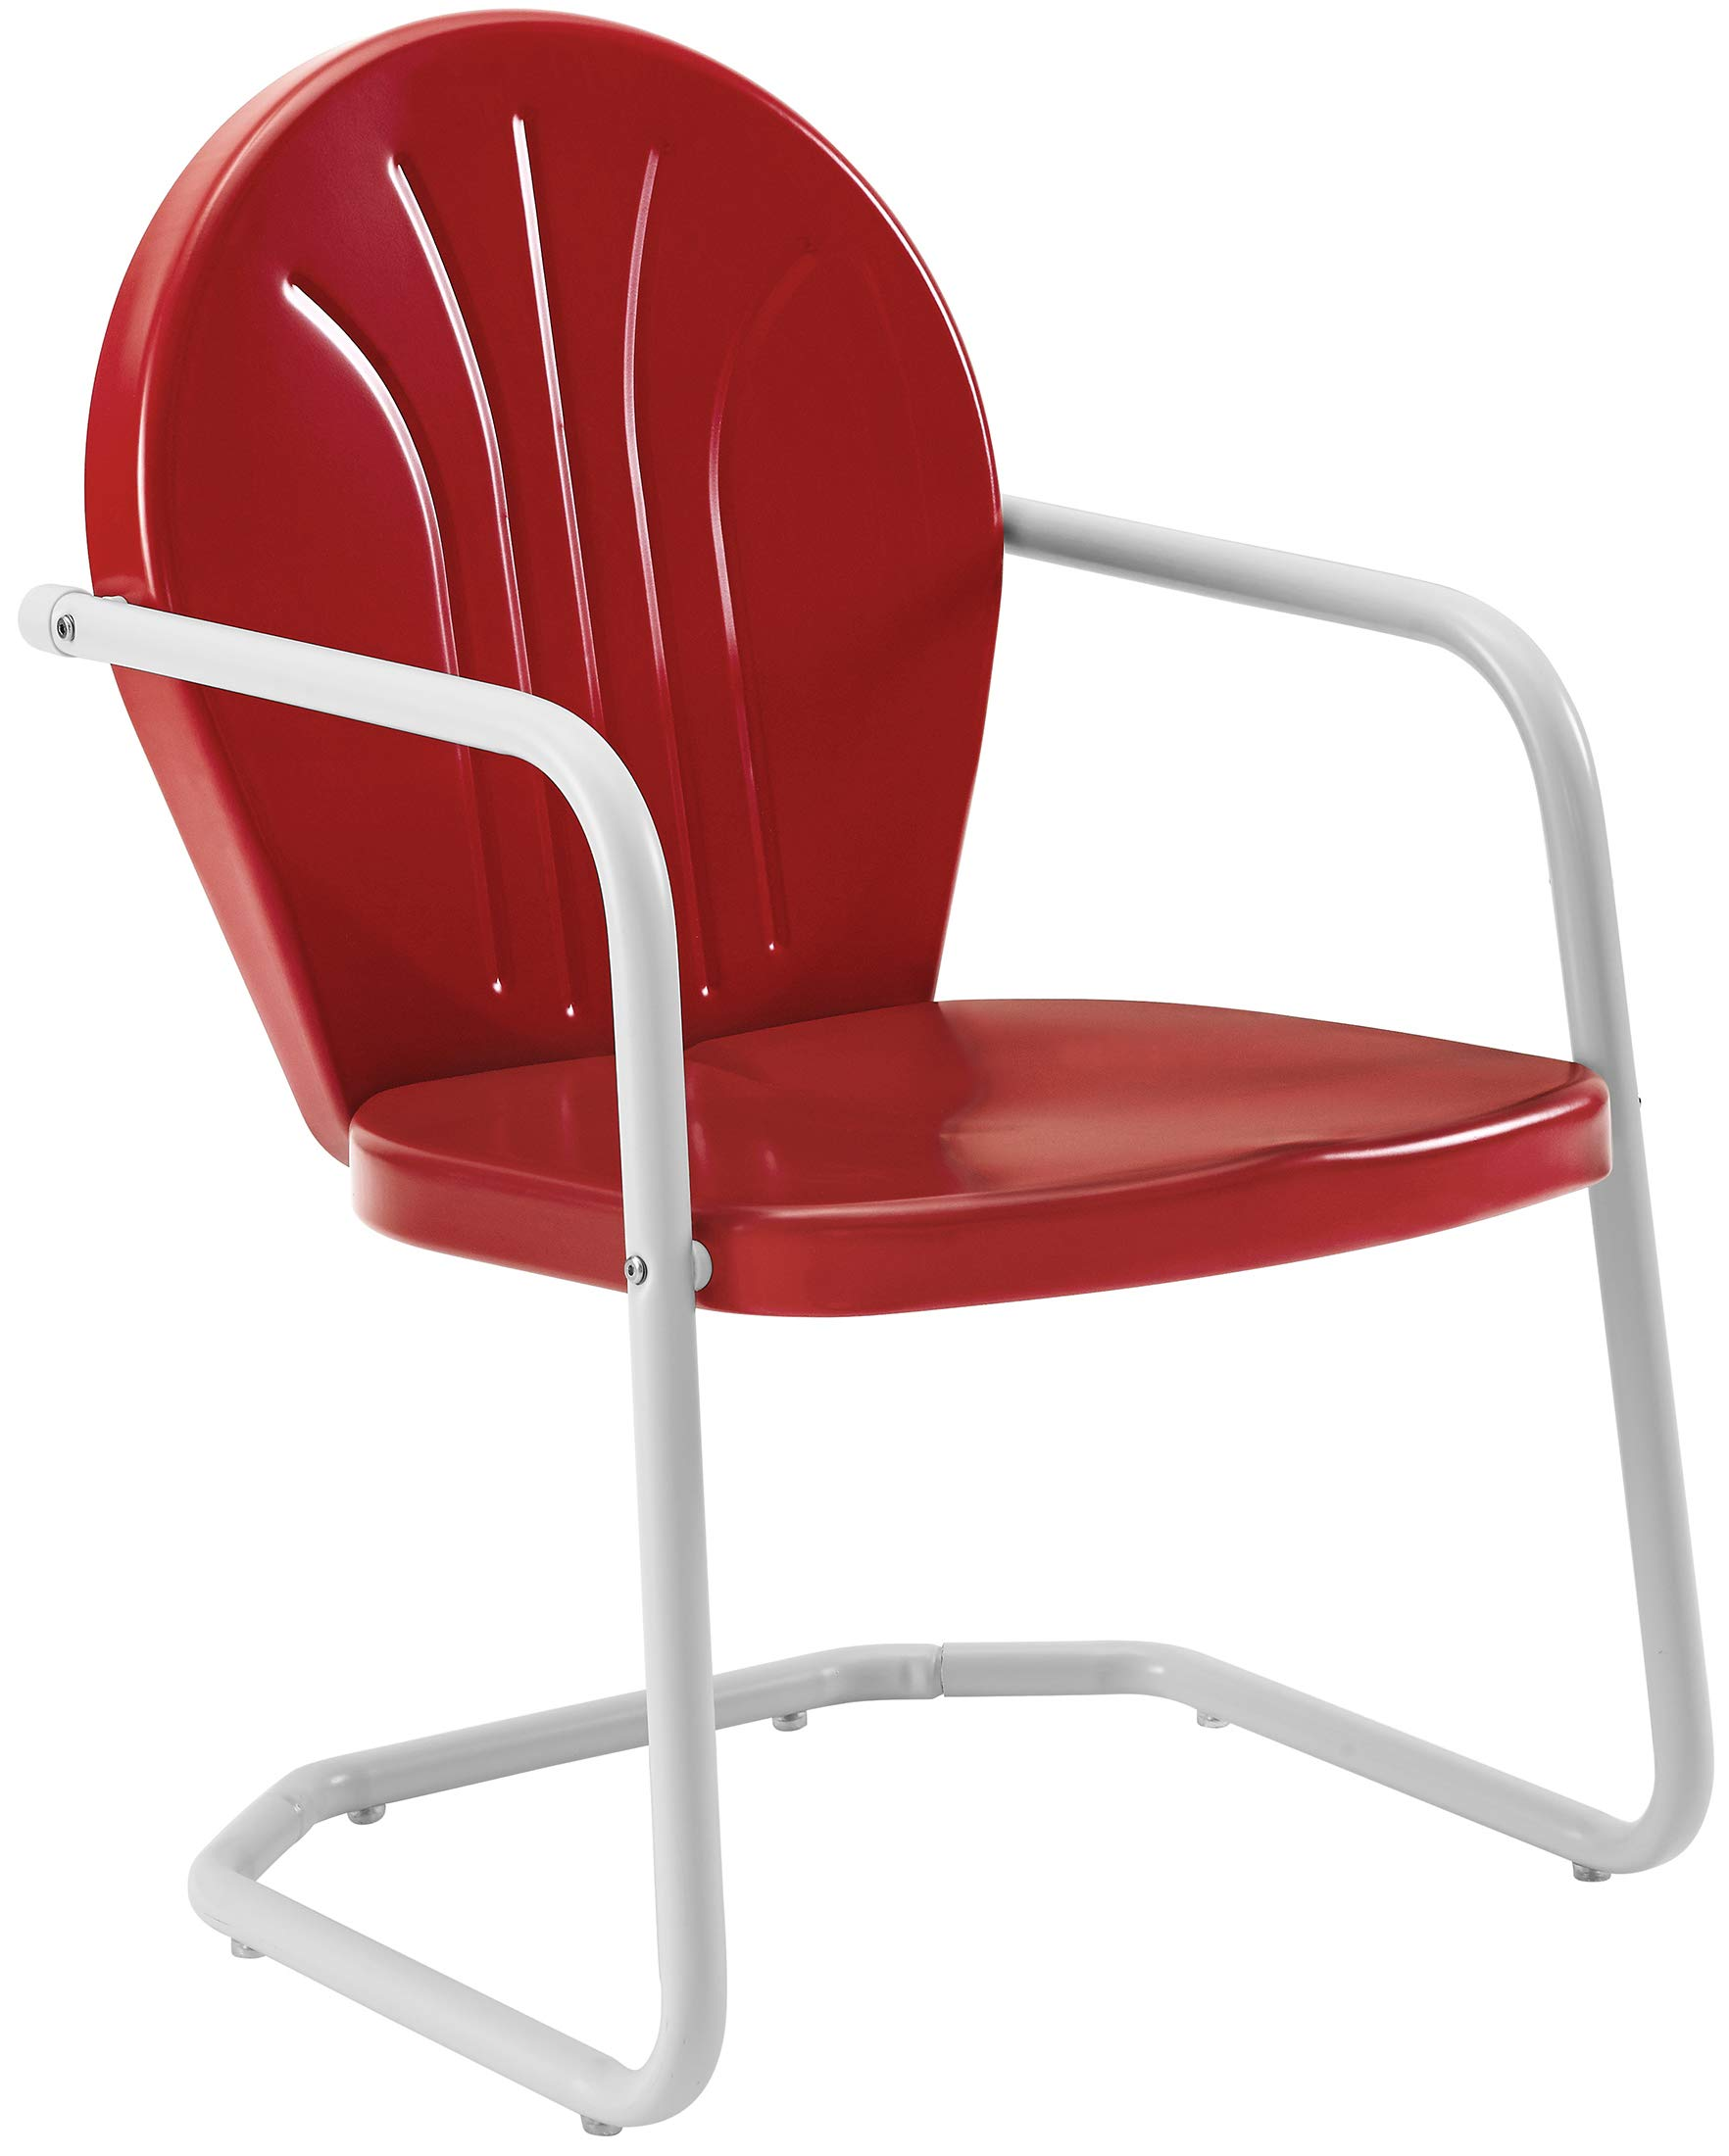 Crosley Furniture Griffith Metal Outdoor Chair - Red by Crosley Furniture